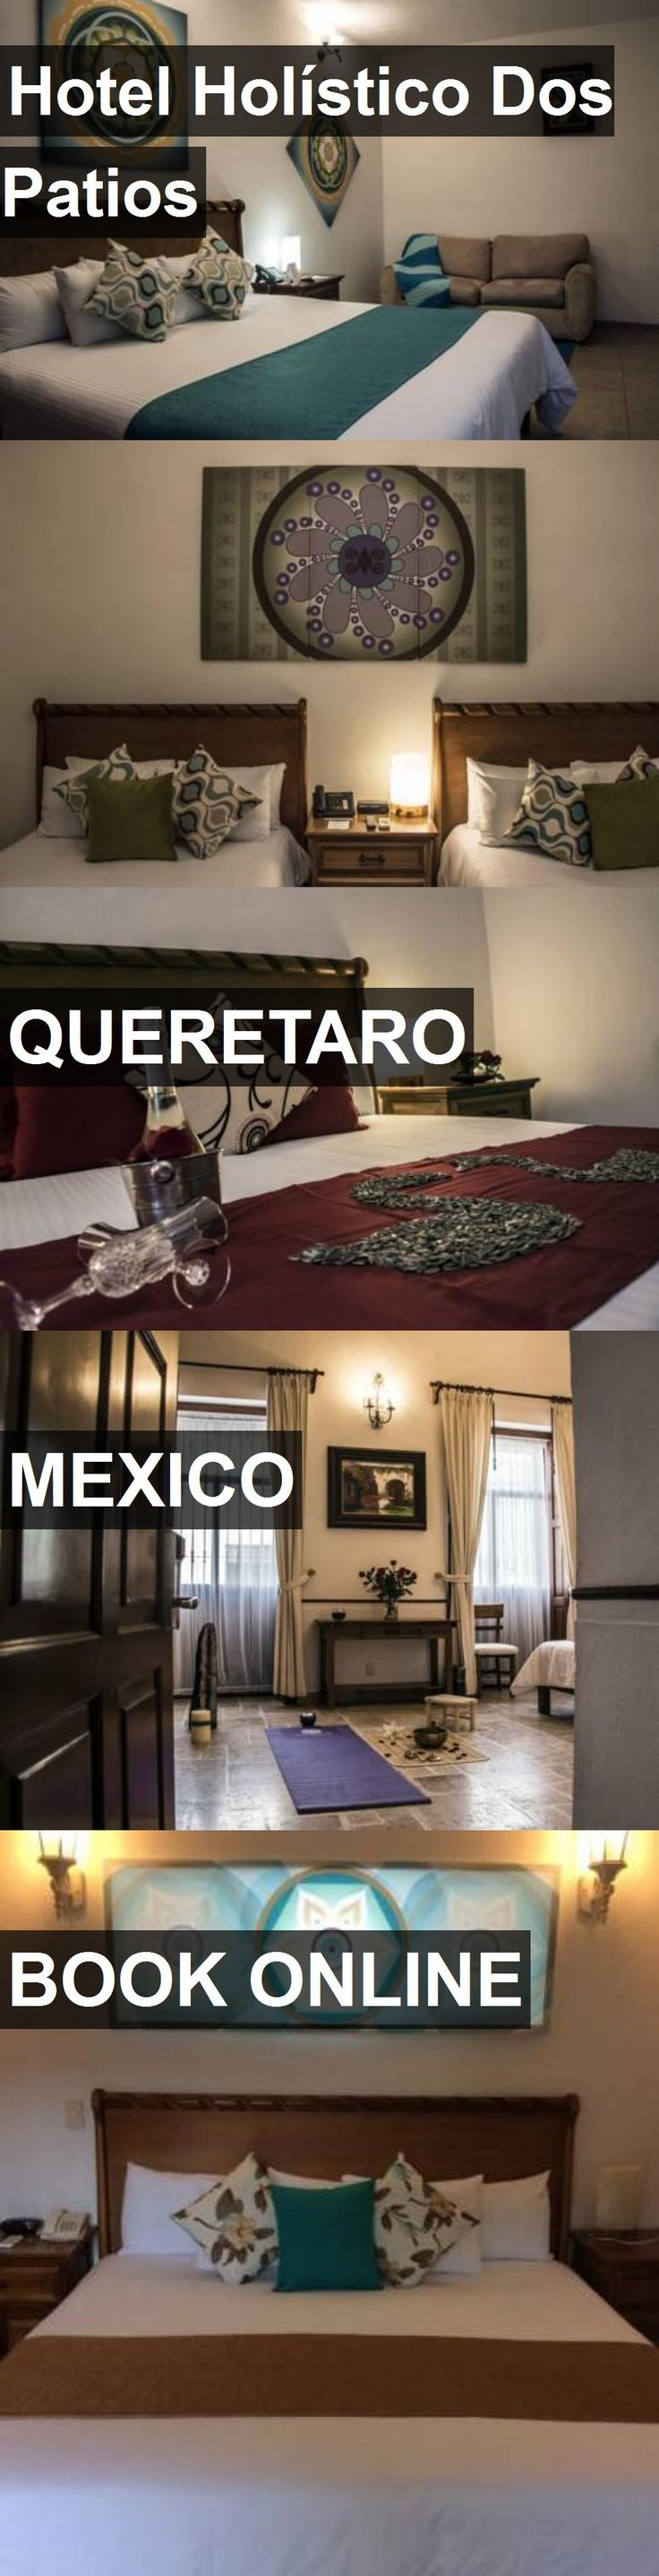 Hotel Hotel Holístico Dos Patios in Queretaro, Mexico. For more information, photos, reviews and best prices please follow the link. #Mexico #Queretaro #HotelHolísticoDosPatios #hotel #travel #vacation